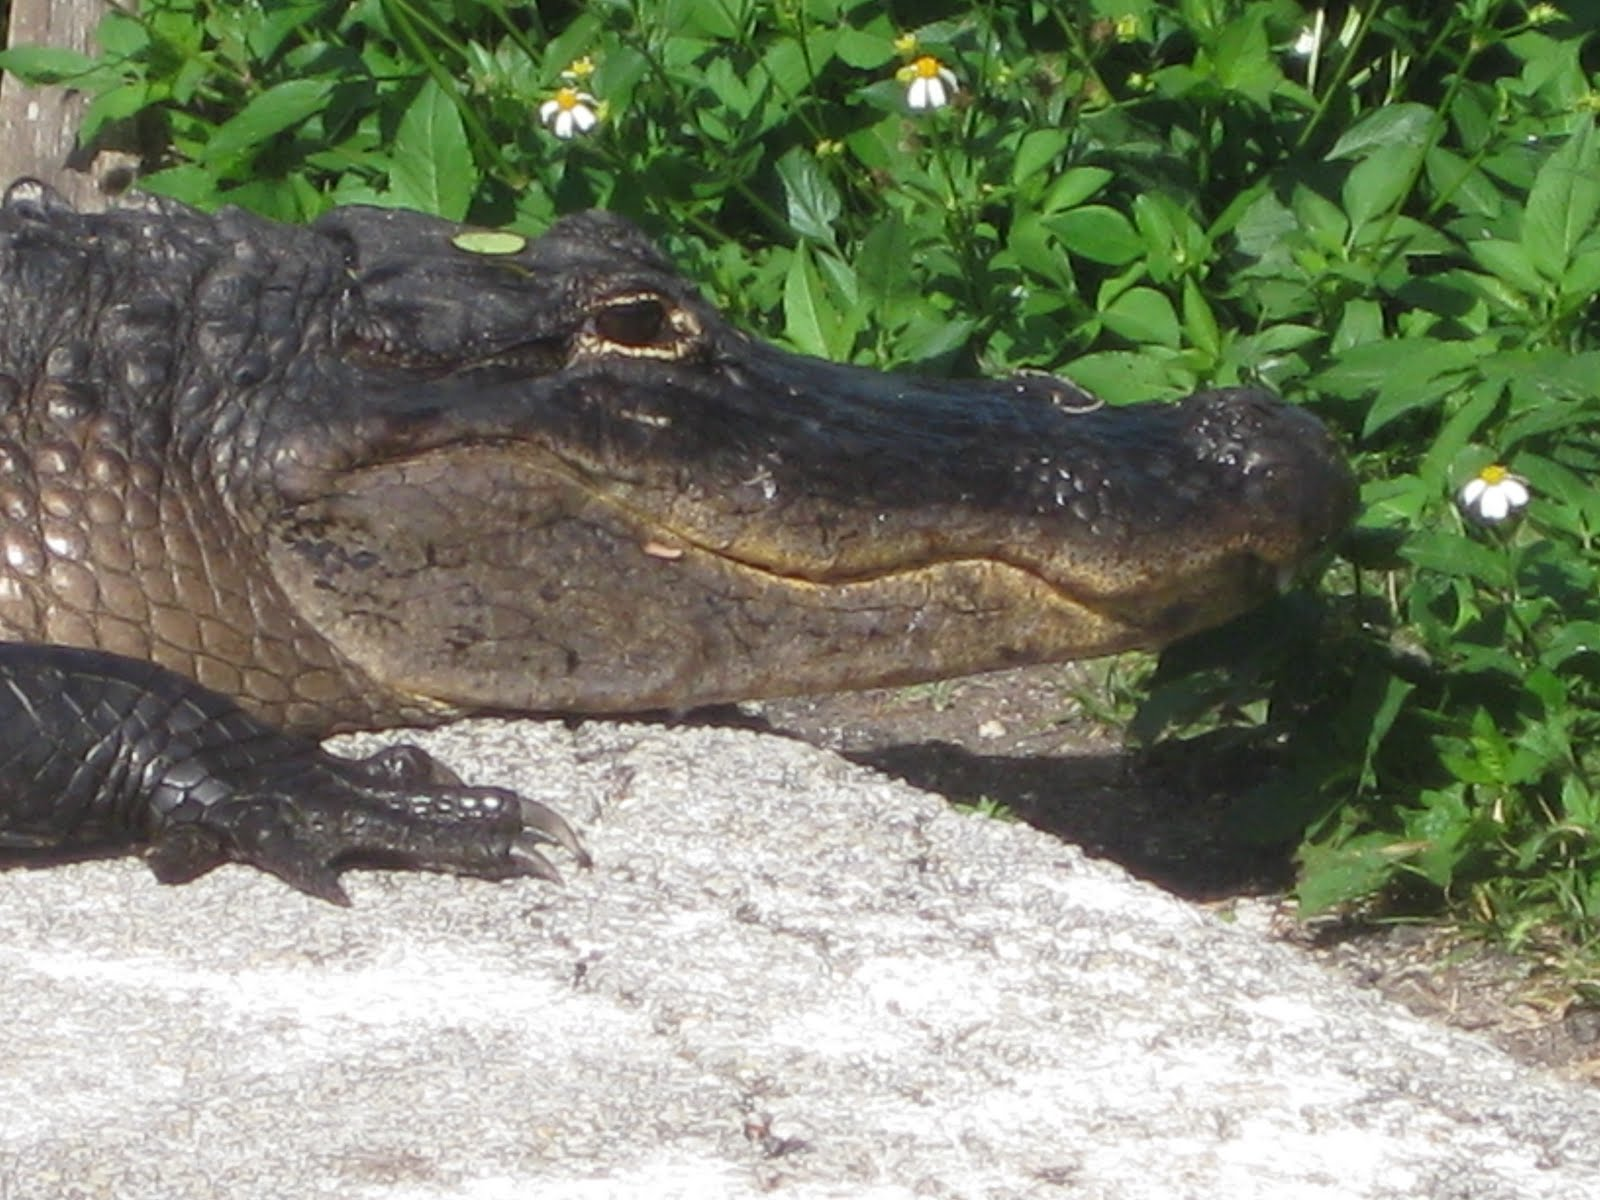 Deckers on the Road: Crocodiles and Alligators